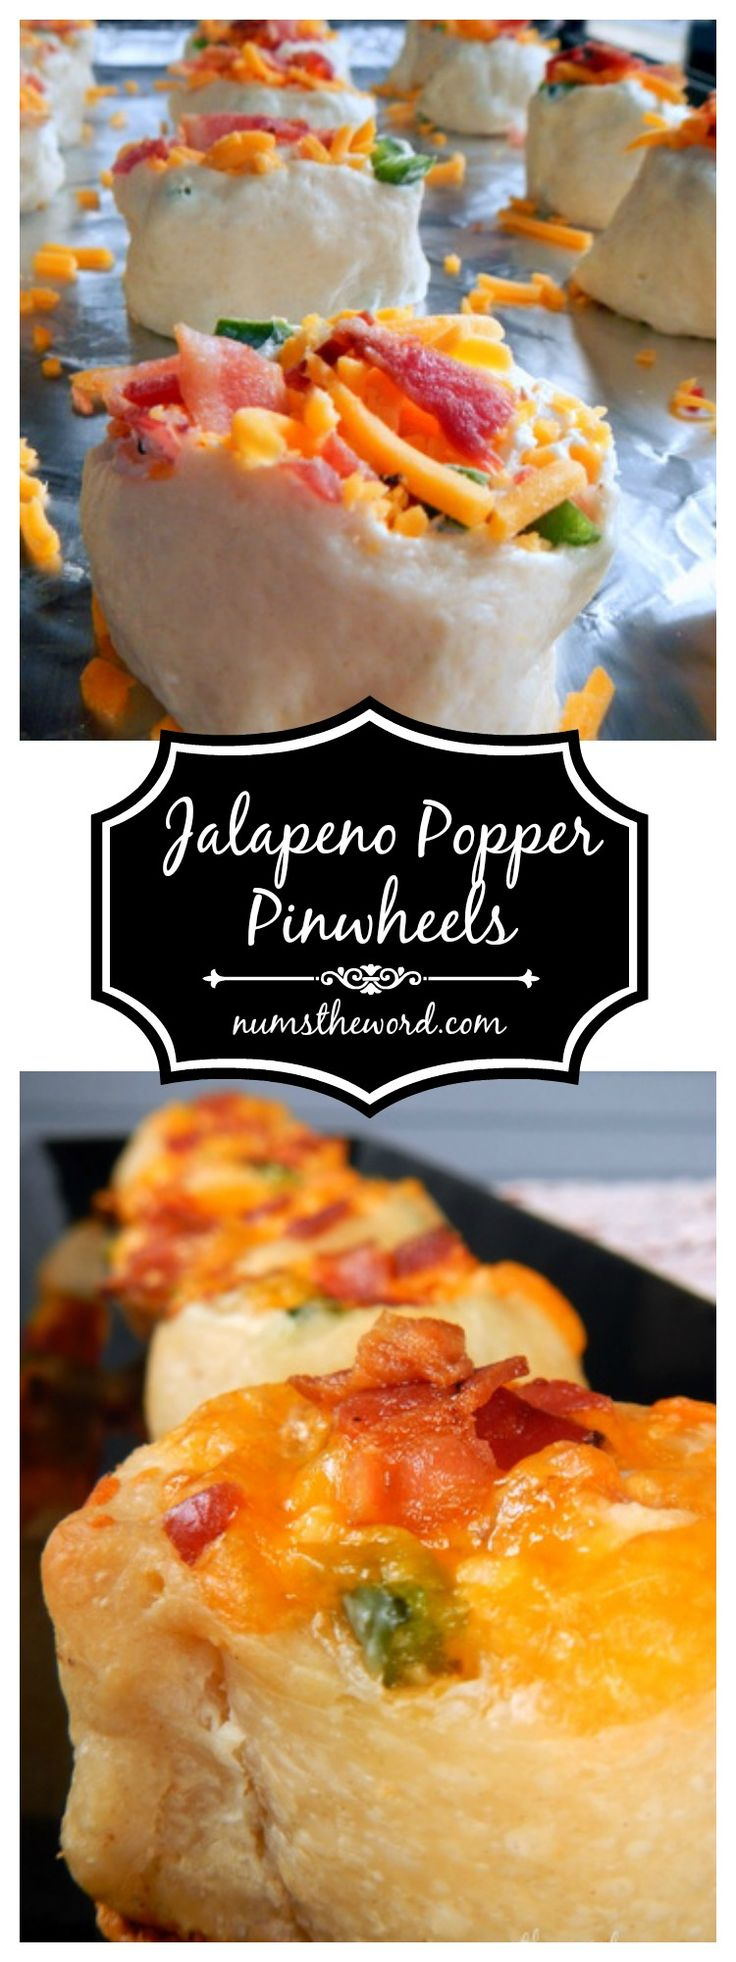 Looking for a quick appetizer?  This one takes 20 minutes or less and will be a hit with your guests!  Jalapeno Popper Pinwheels are one of our favorite go to appetizer and snack recipes!